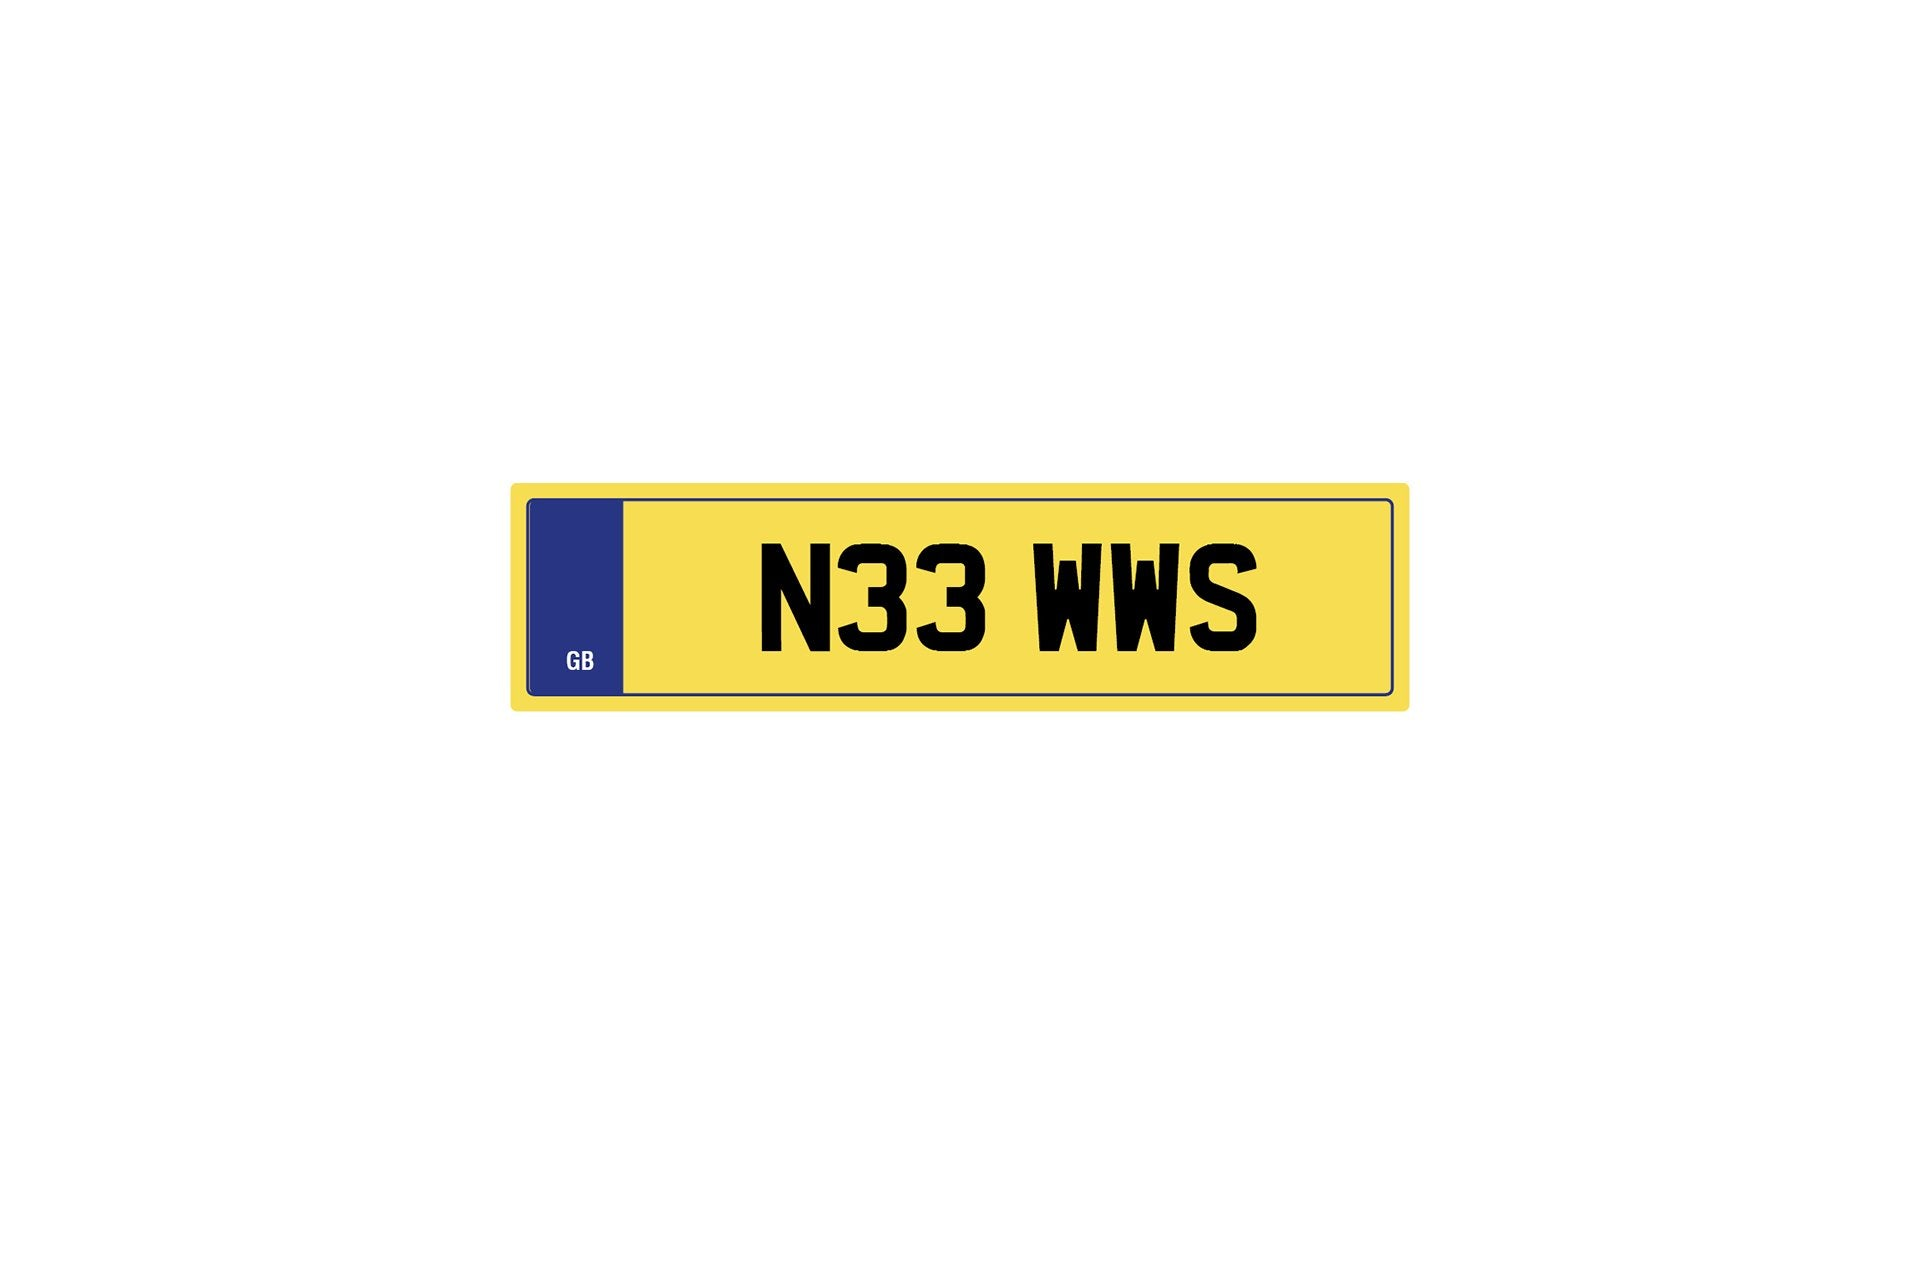 Private Plate N33 Wws by Kahn - Image 175